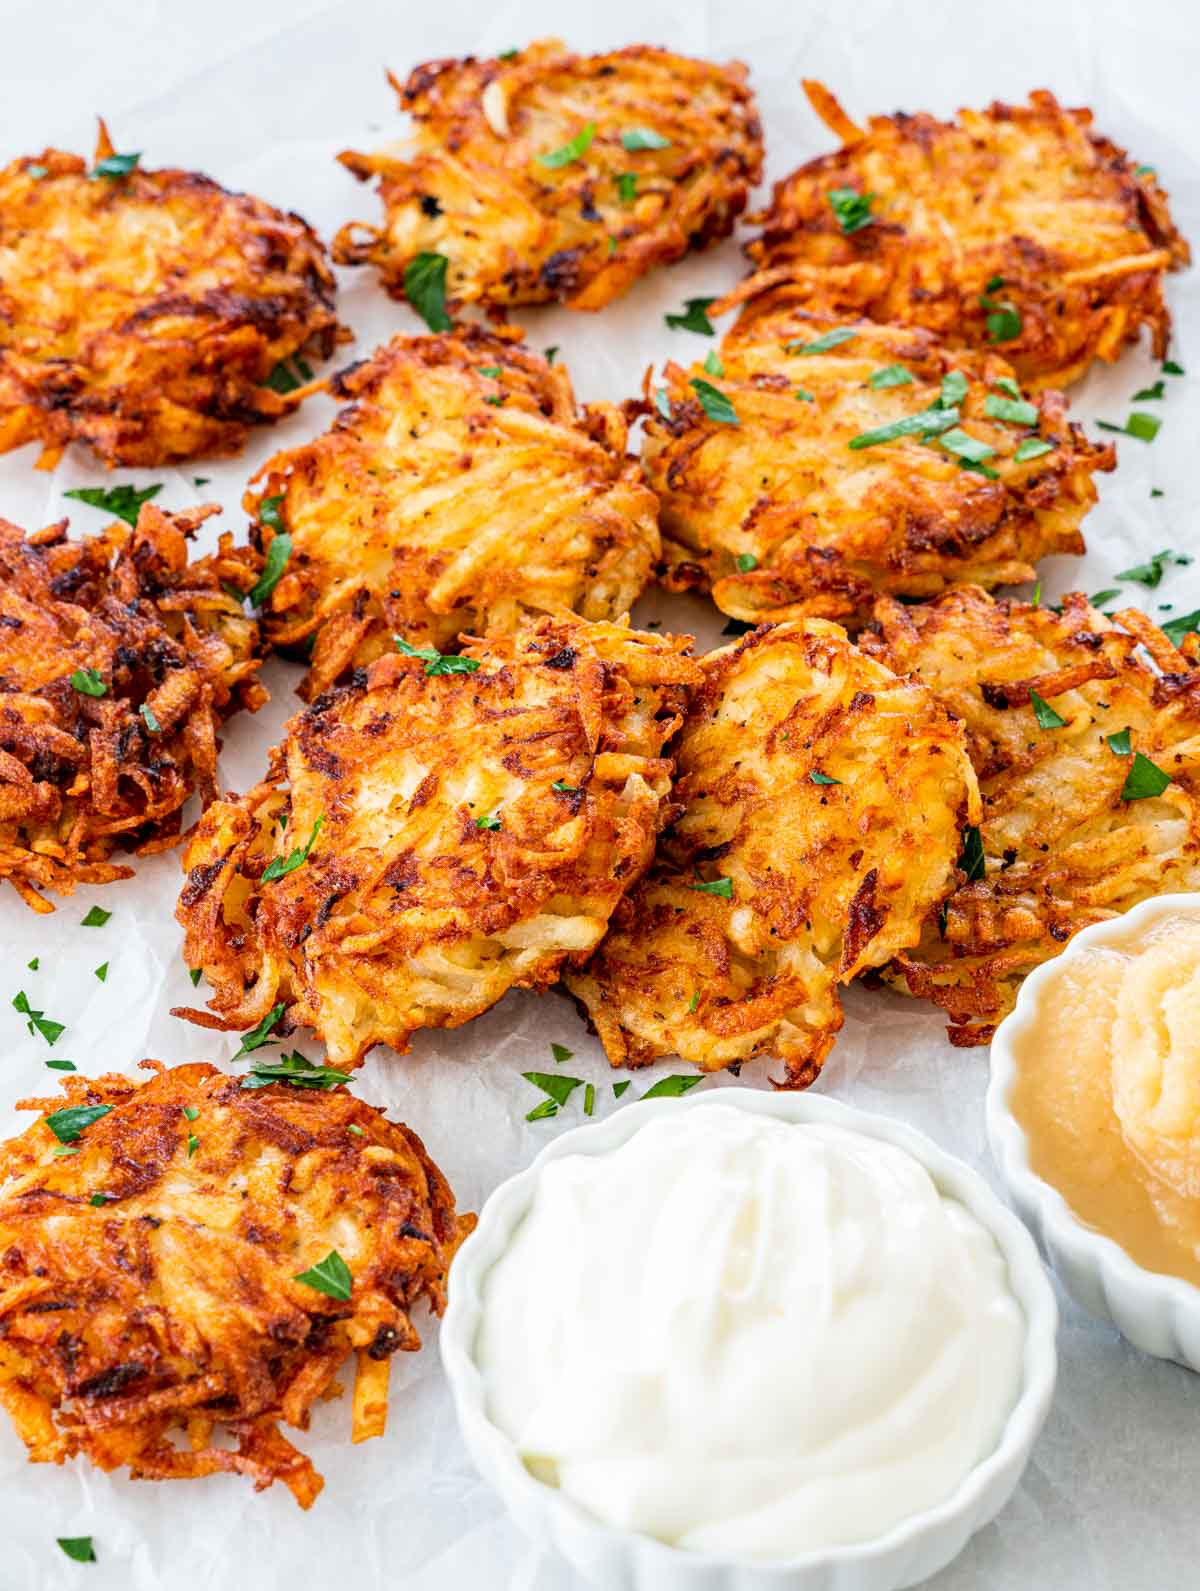 potato latkes garnished with parsley next to two little bowls with sour cream and applesauce